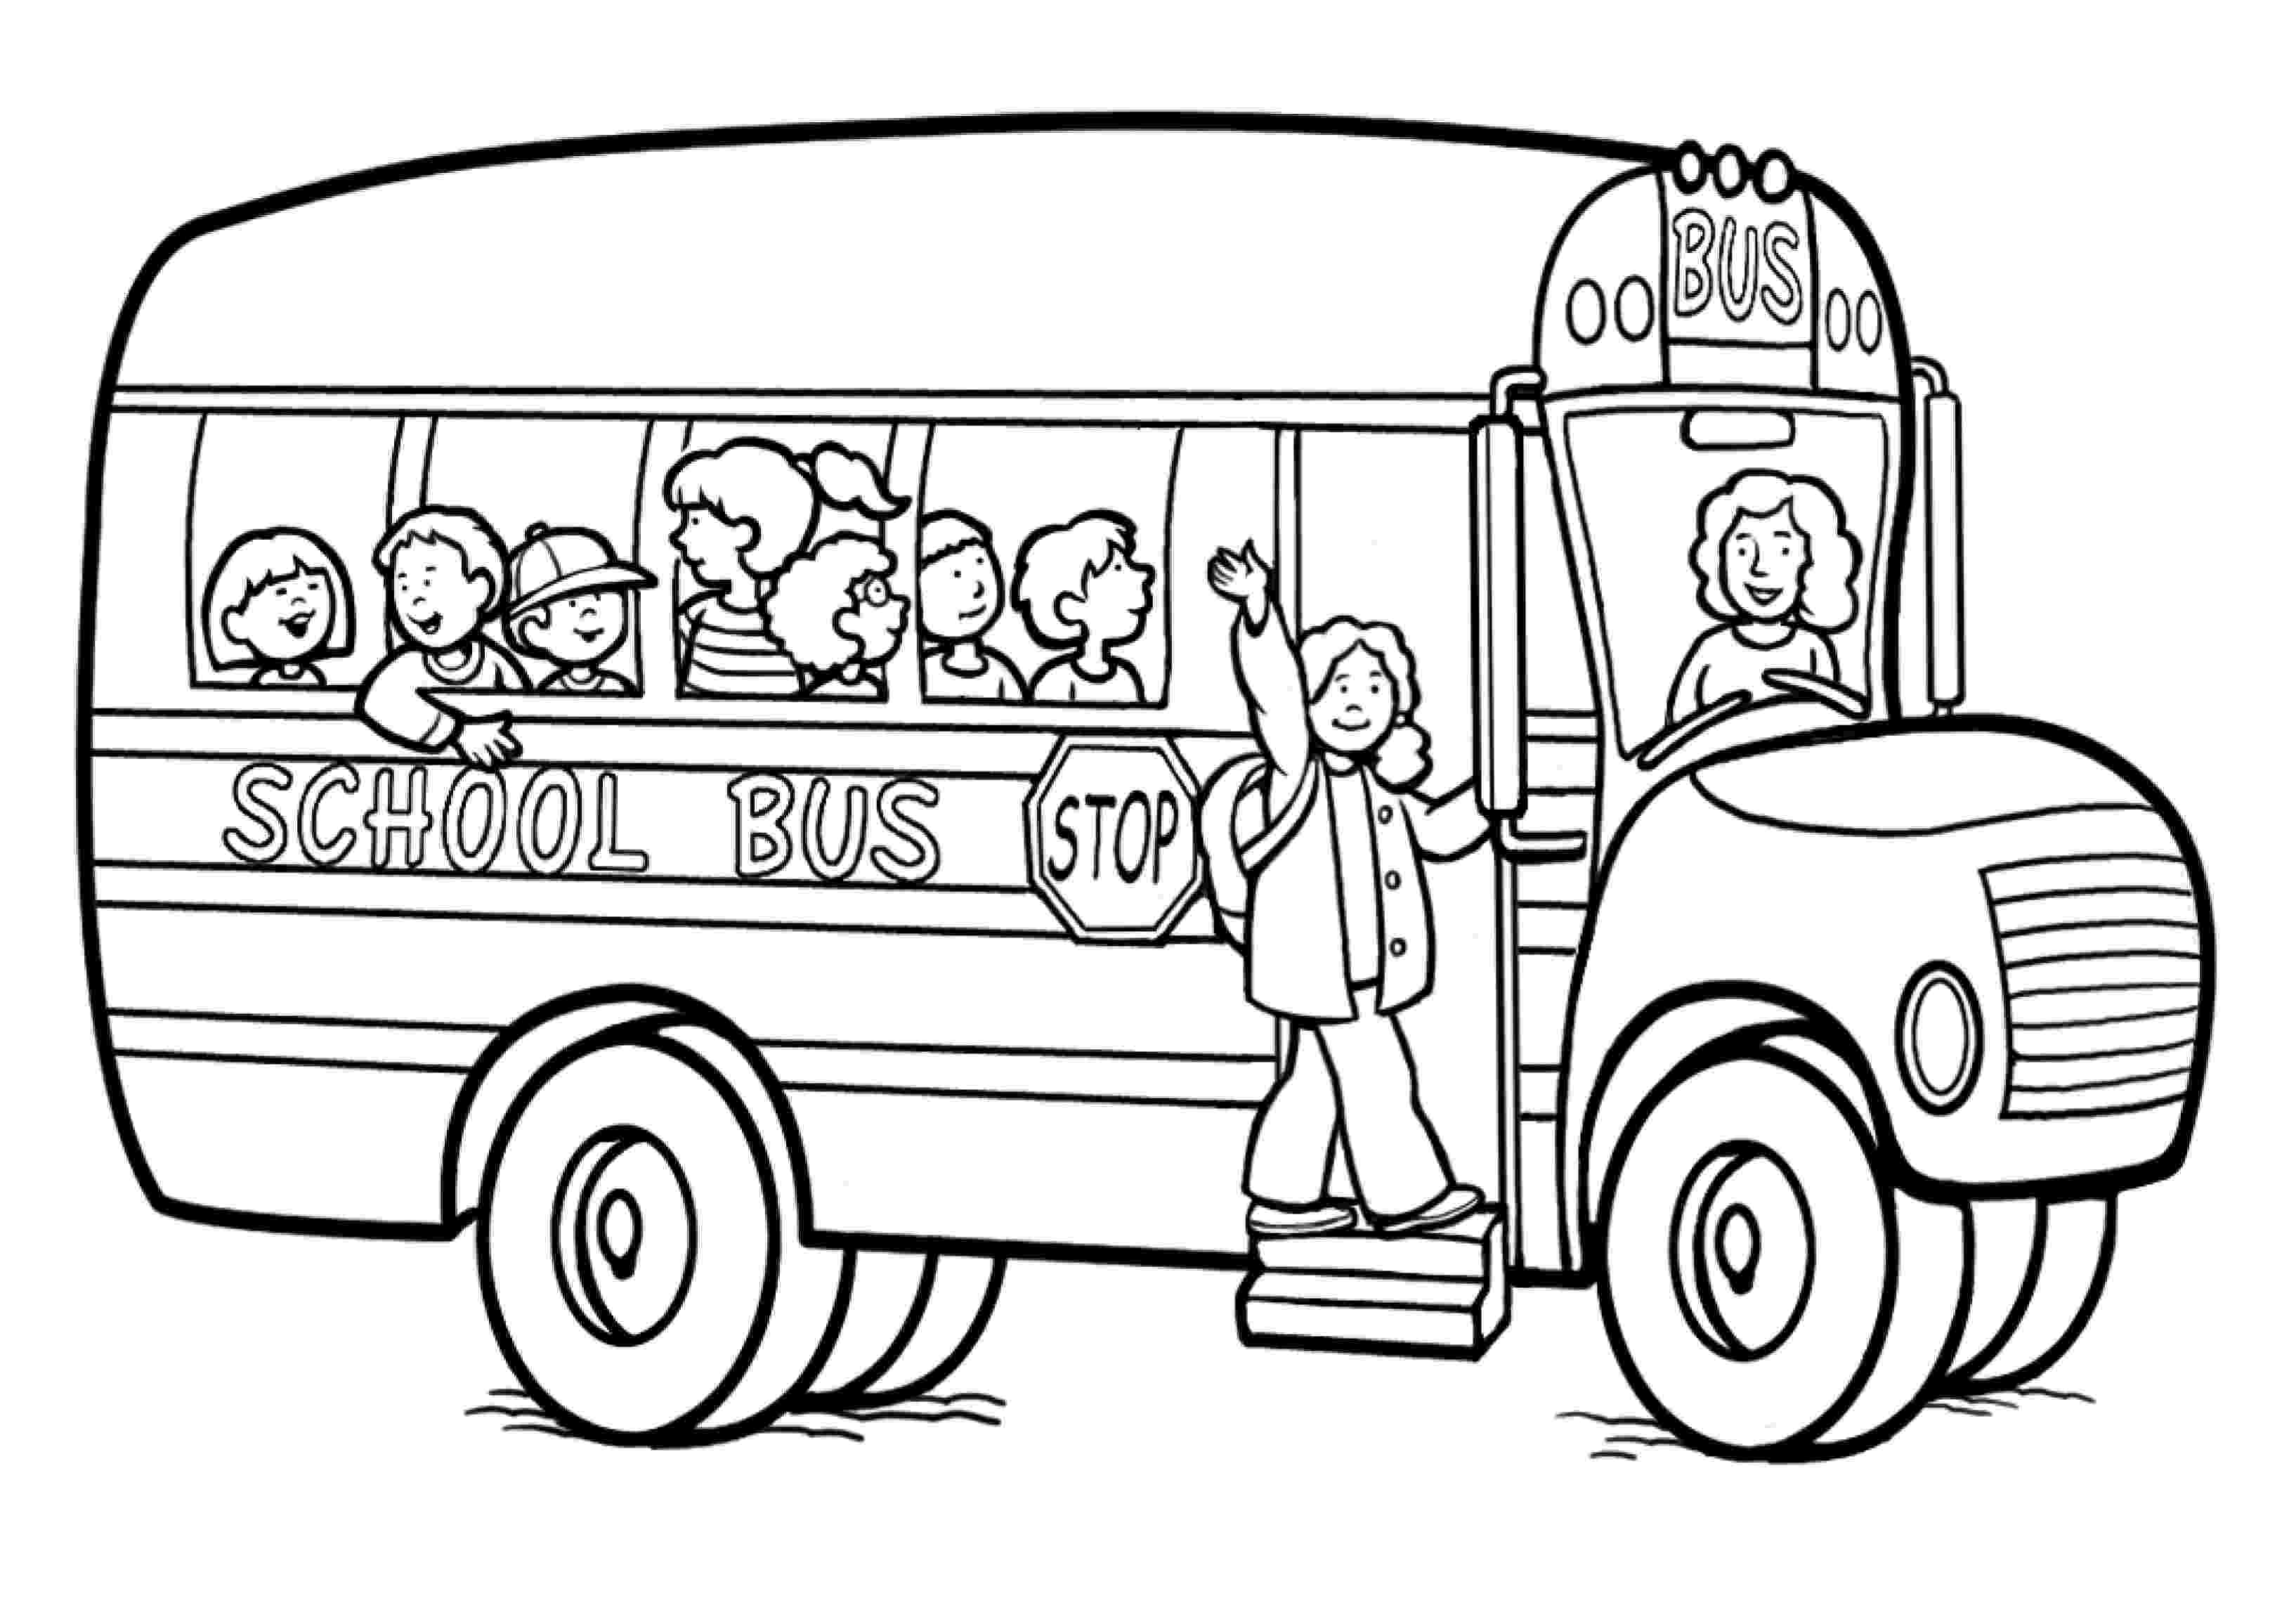 school bus pictures to color bus coloring pages school bus coloring pages k math bus school color to pictures